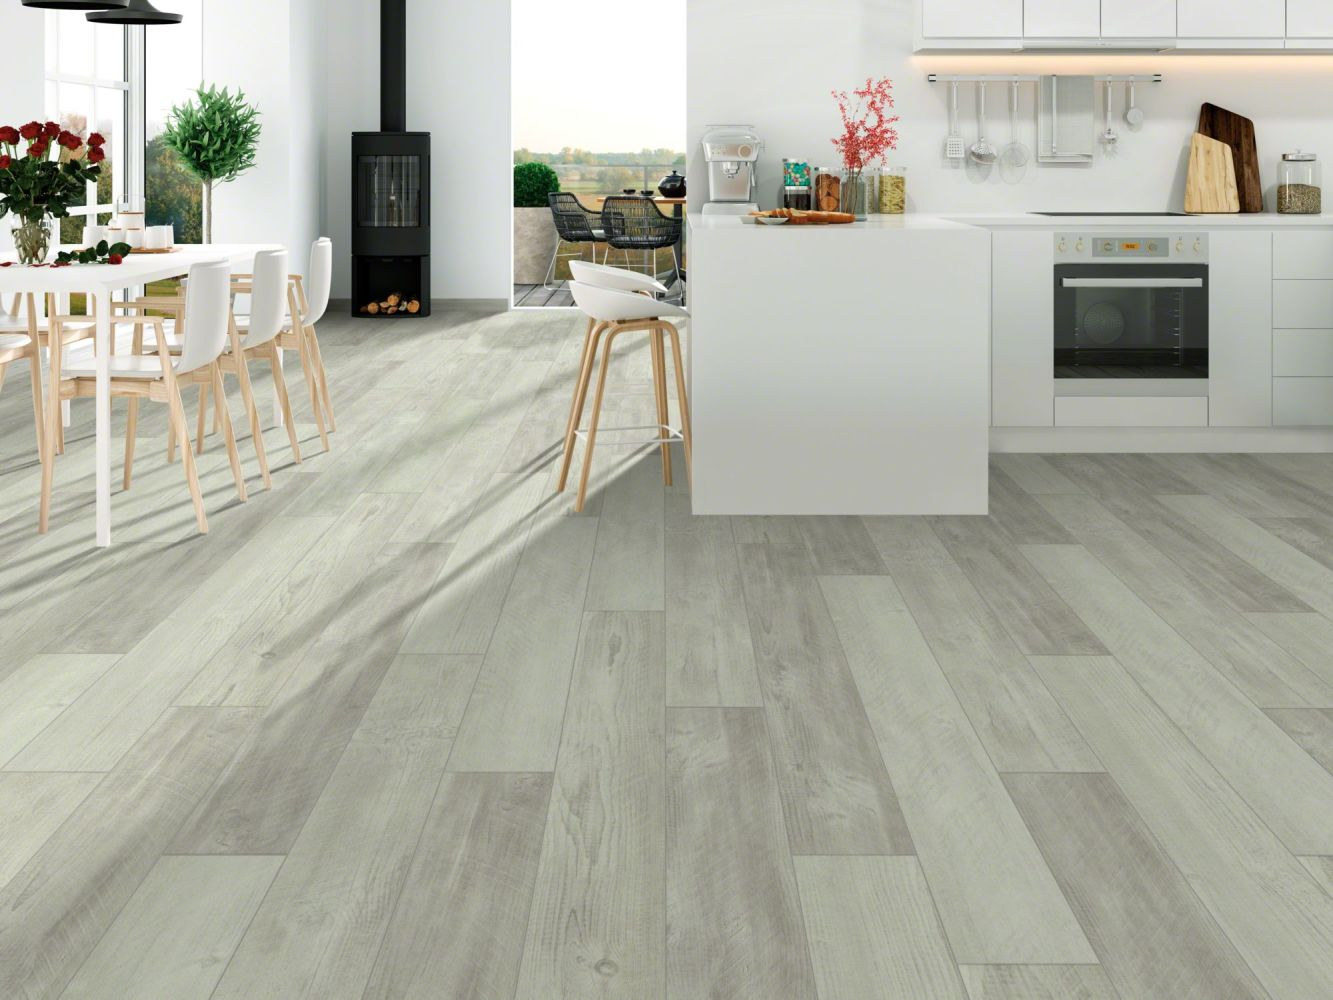 Shaw Floors Resilient Residential Cross-sawn Pine 720c Plus Distressed Pine 00164_0865V